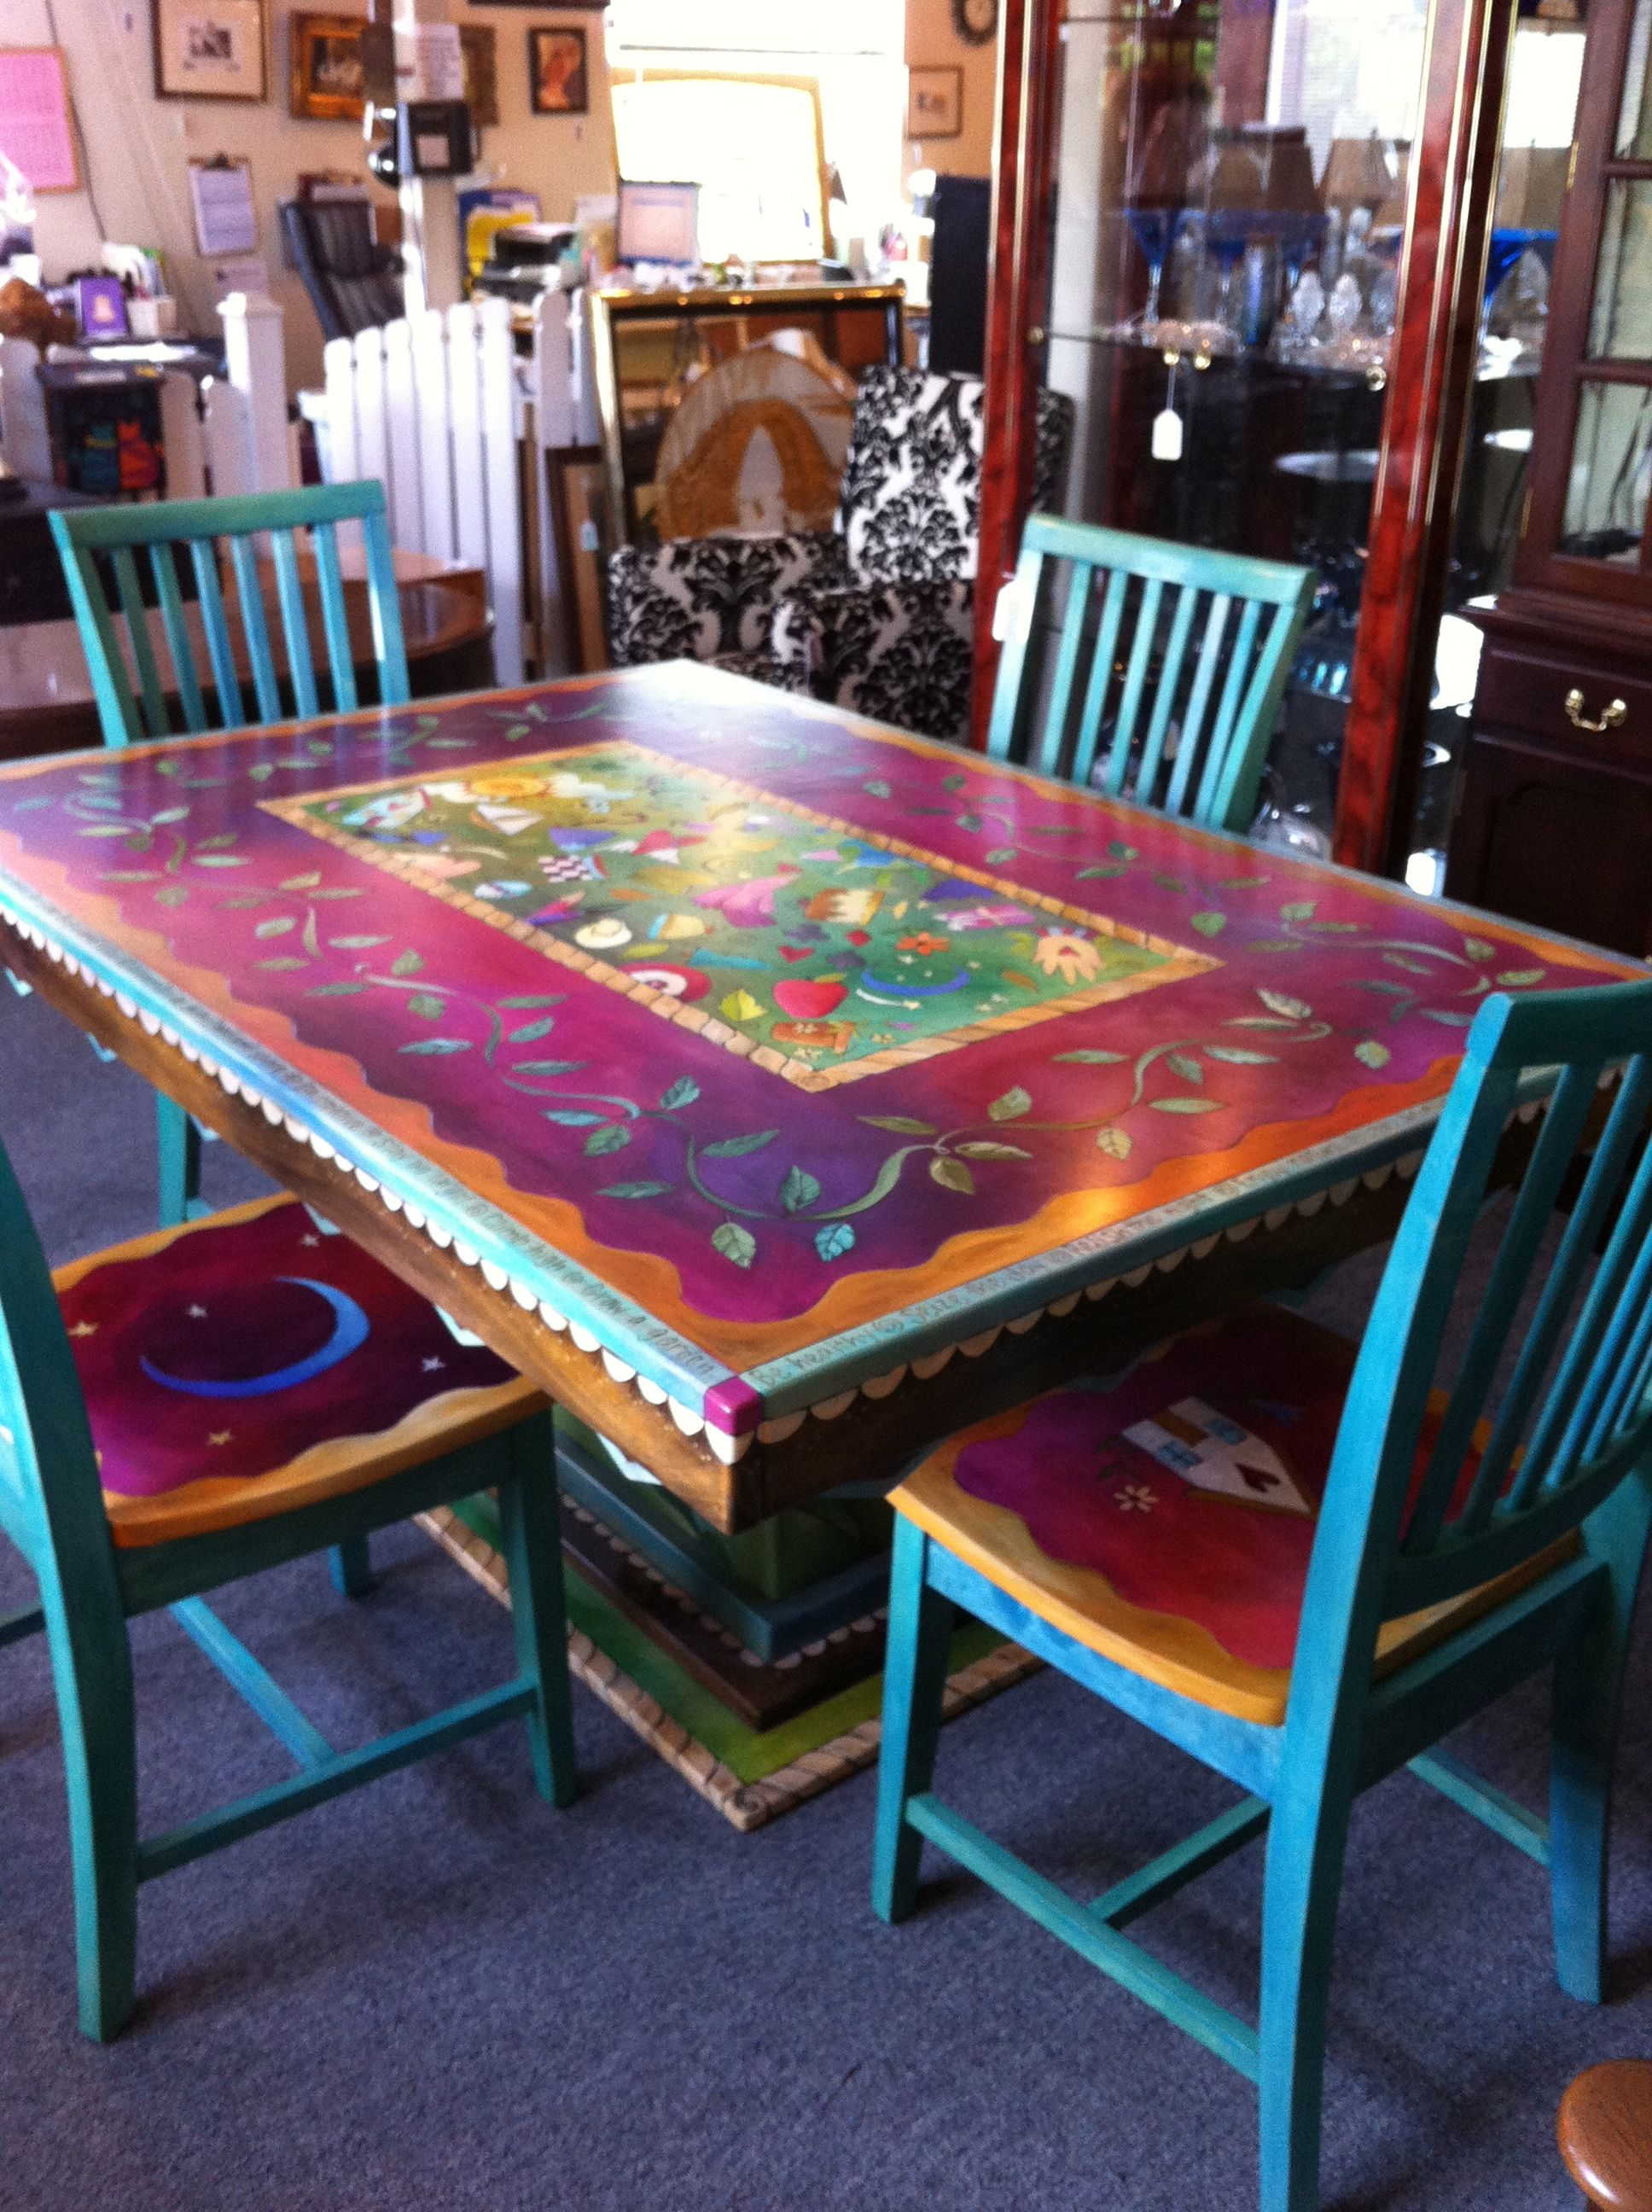 painted kitchen chairs hotels with kitchens in vegas whimsical furniture farmhouse bench